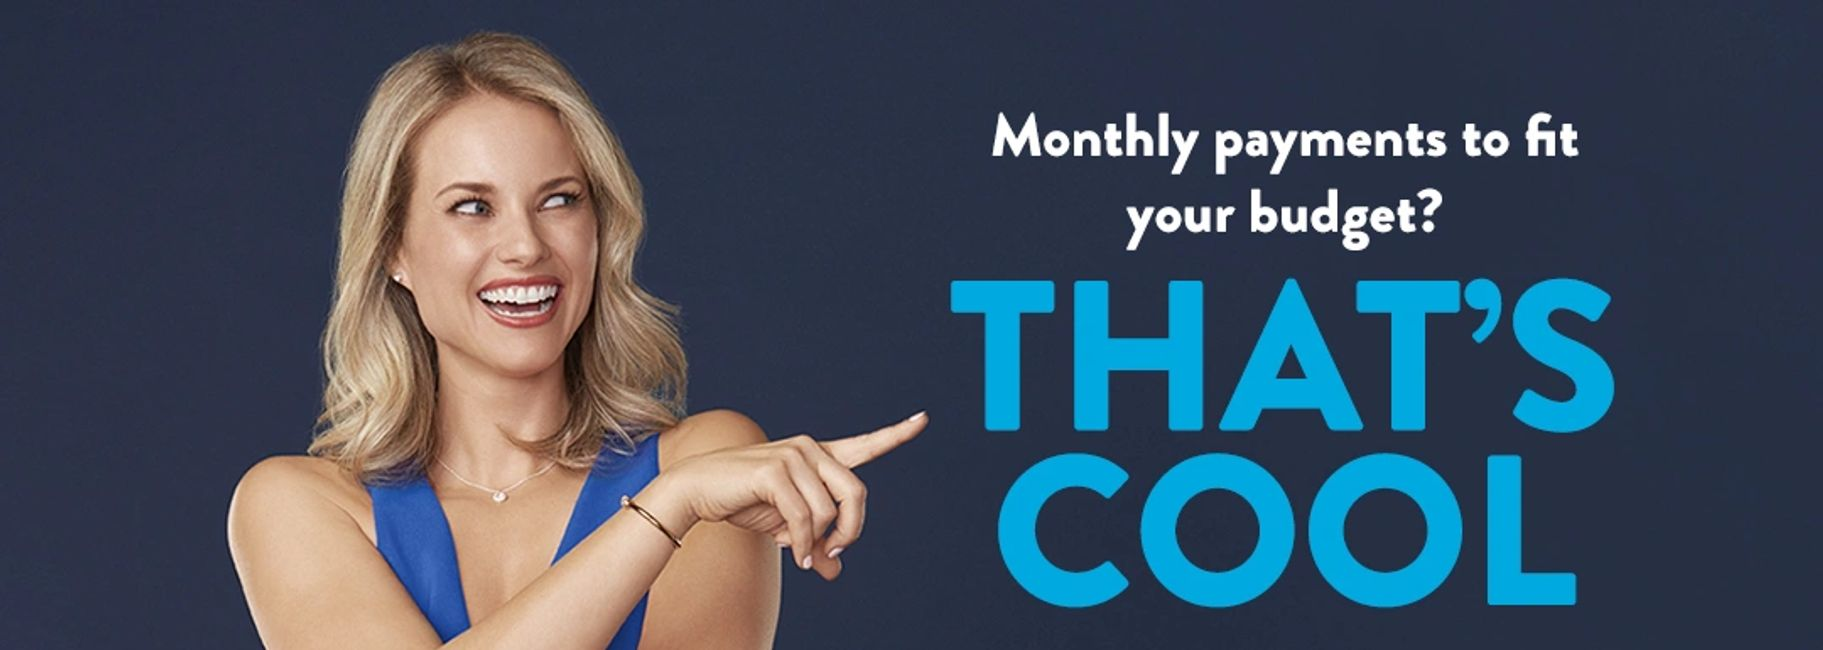 monthly payments for coolsculpting